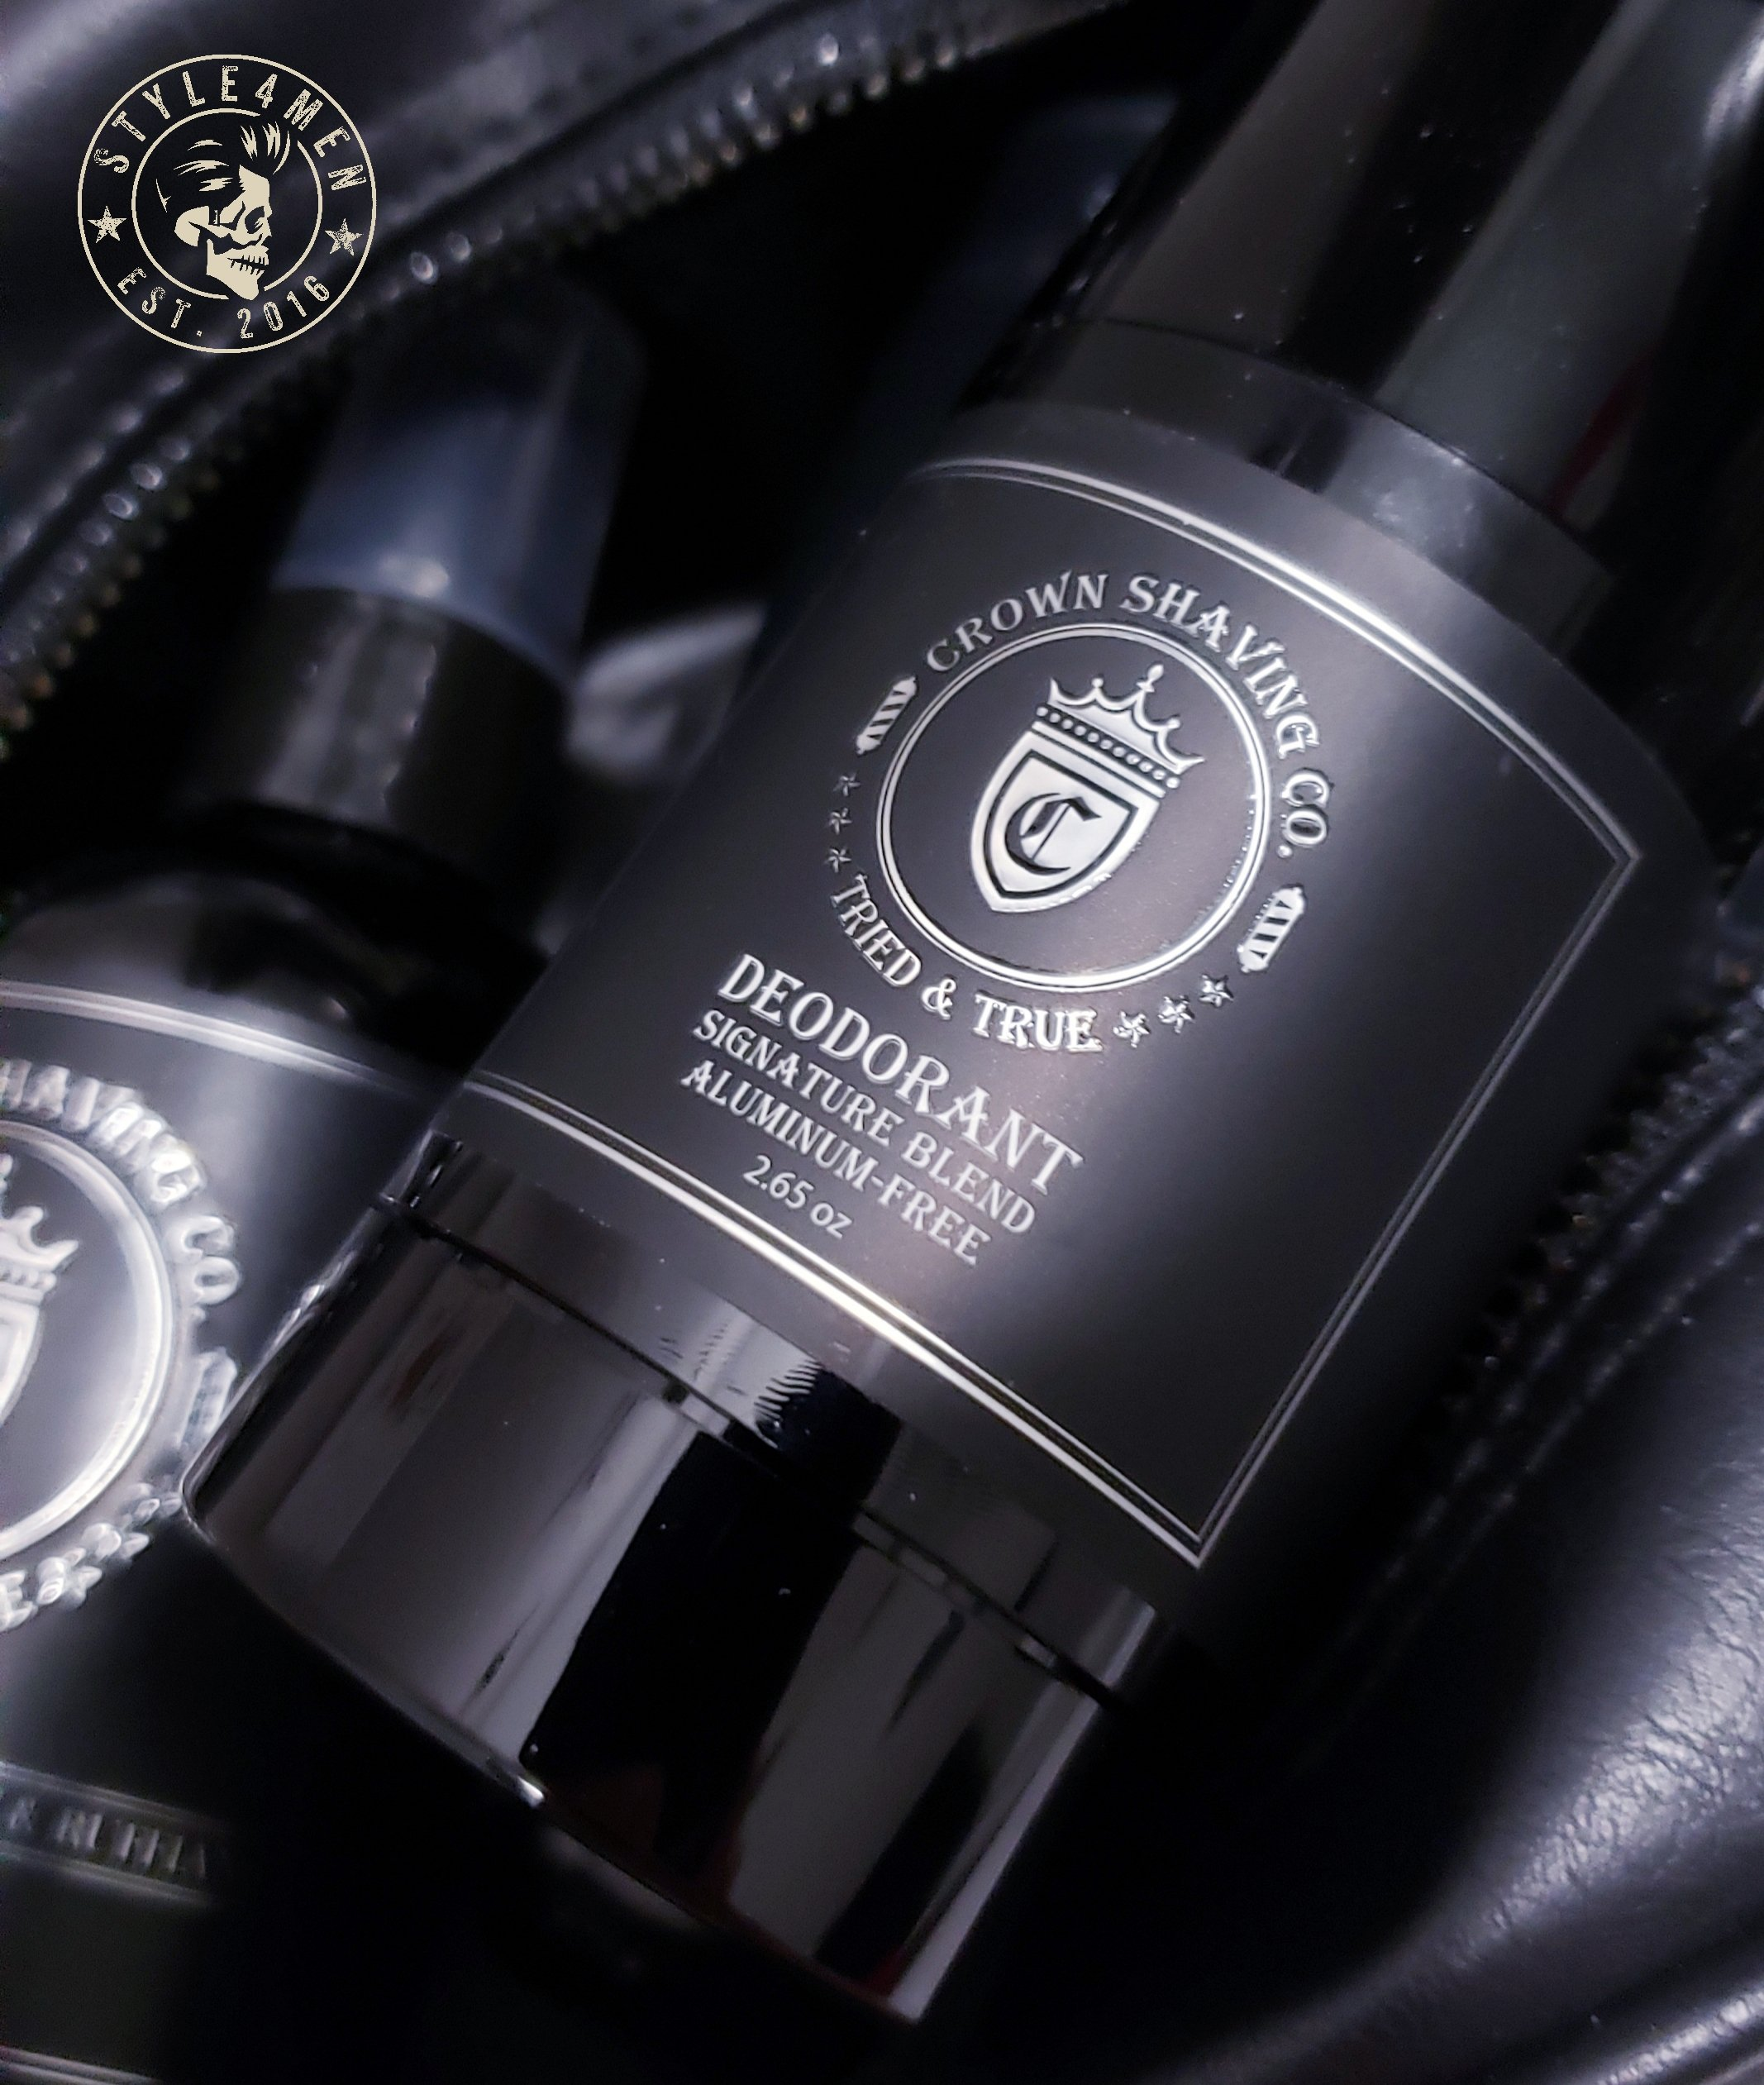 Signature Scent Deodorant by Crown Shaving